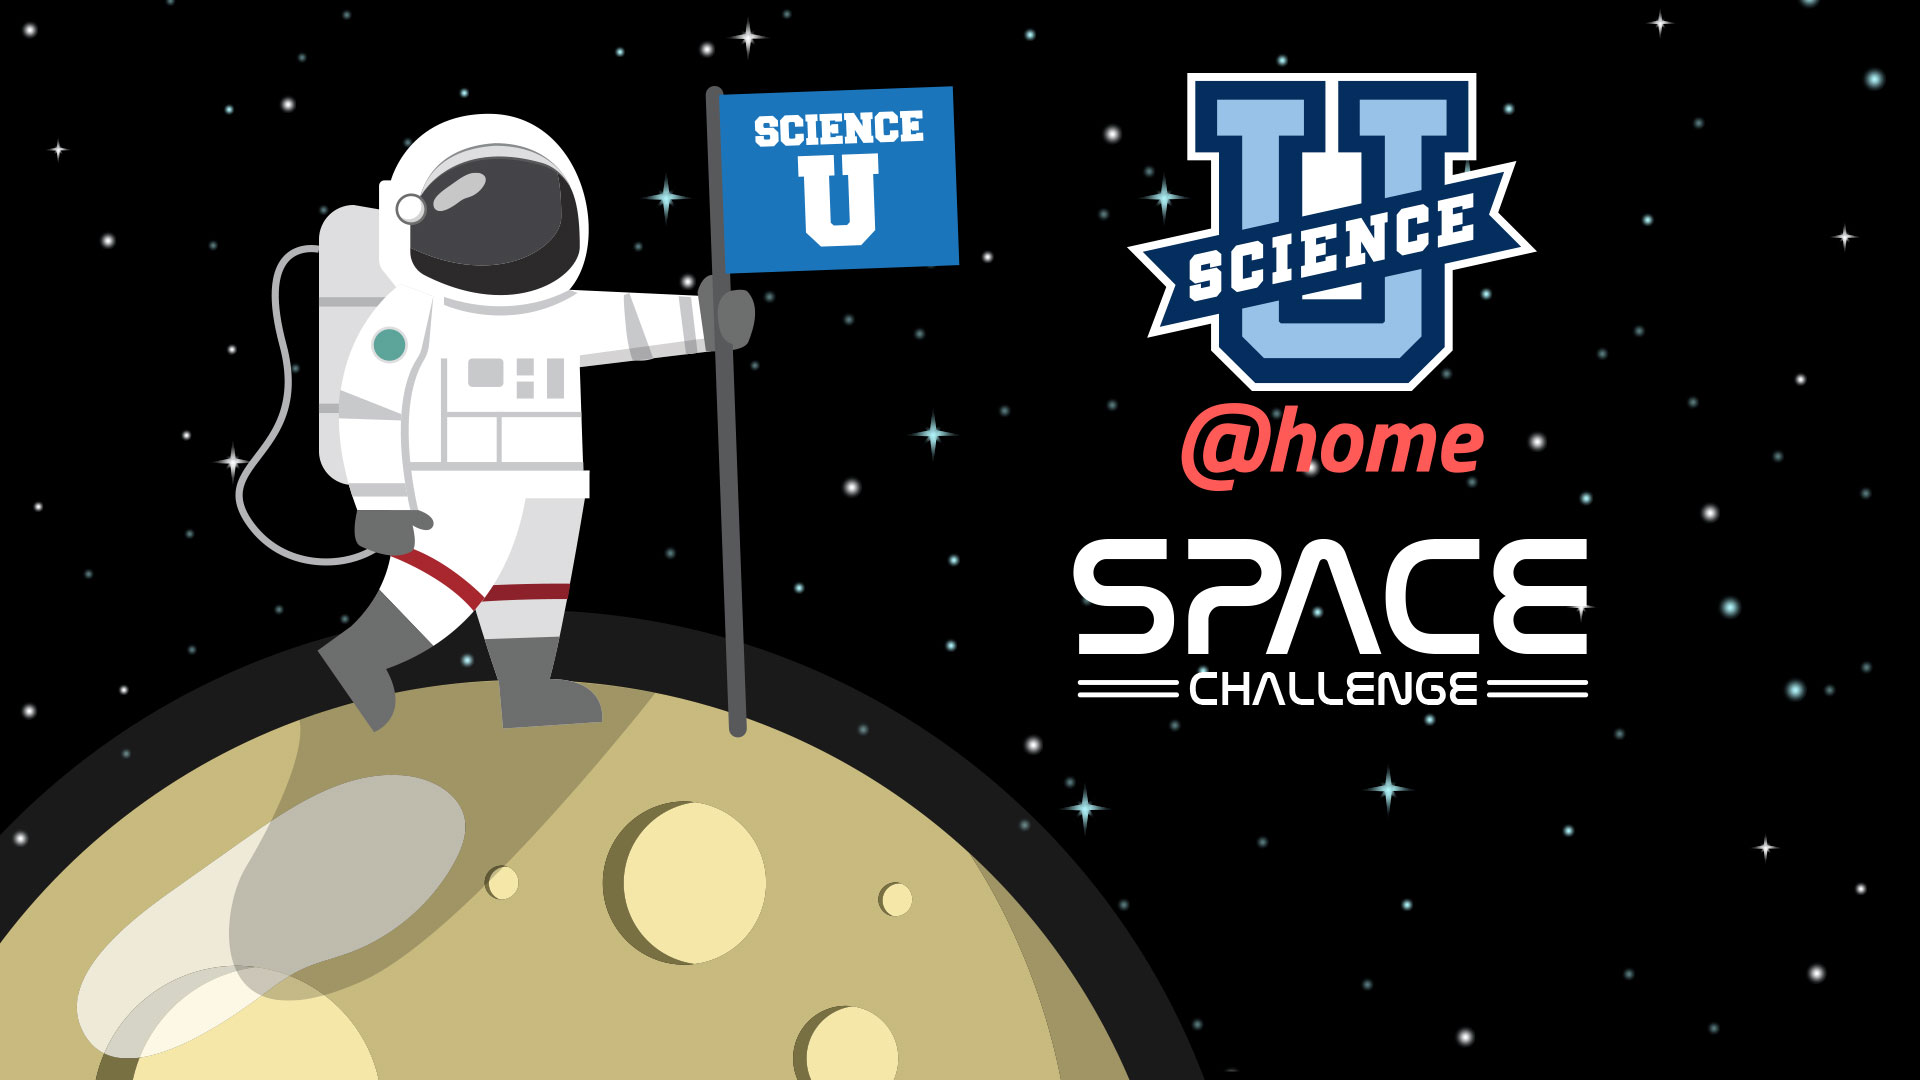 Science-U @Home Space Challenge